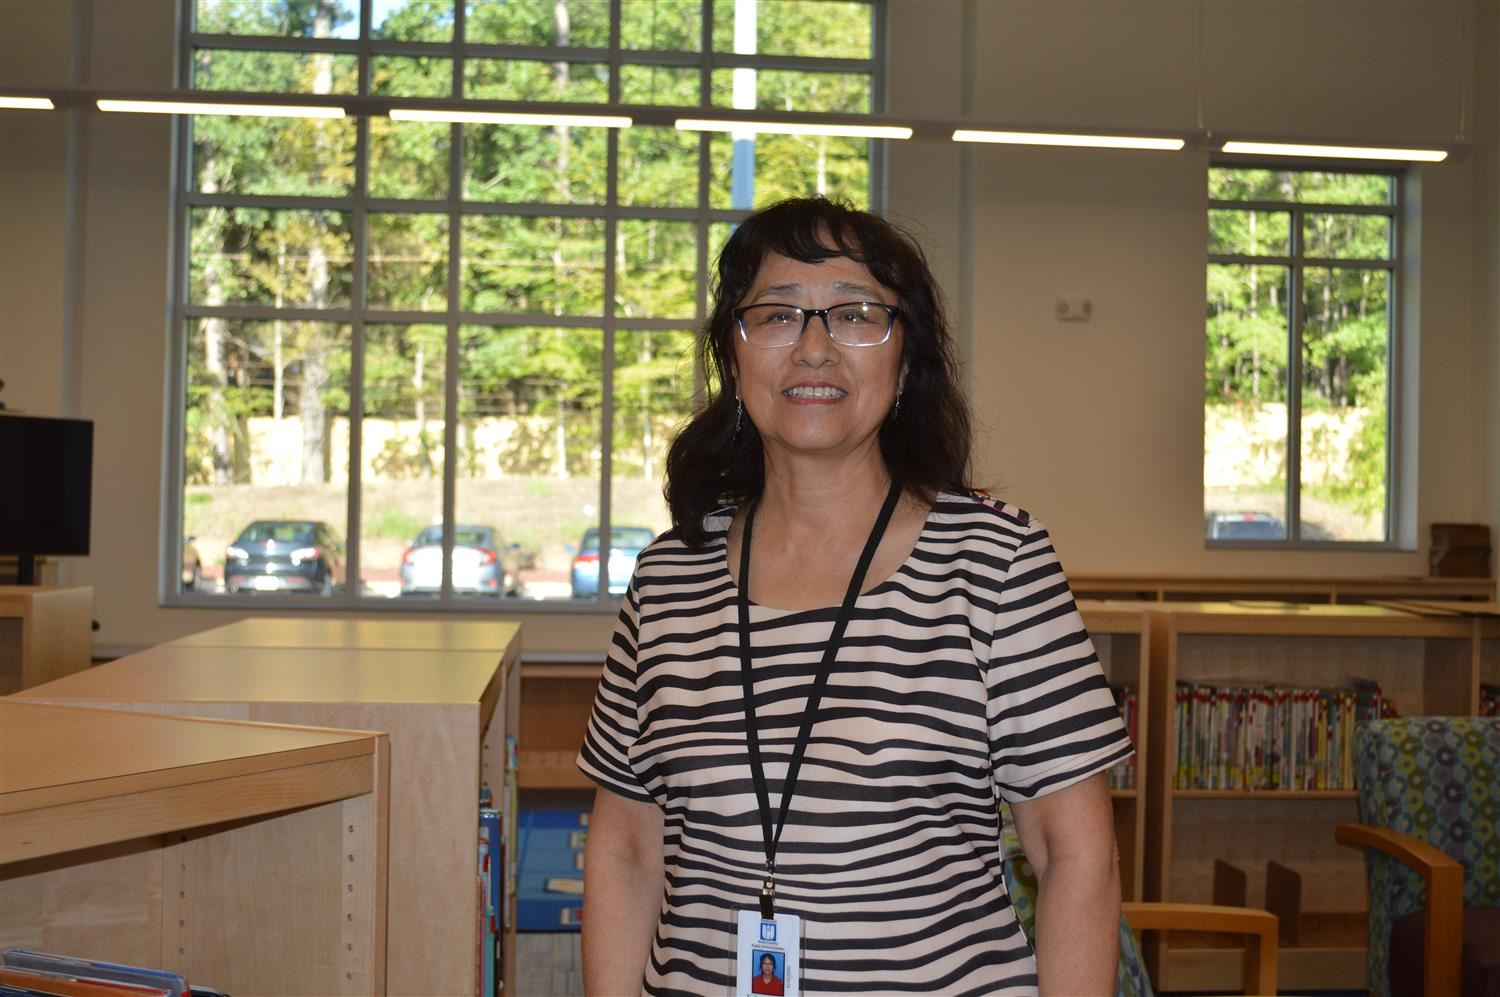 Ms. Jinhua Zheng, Instructional Assistant